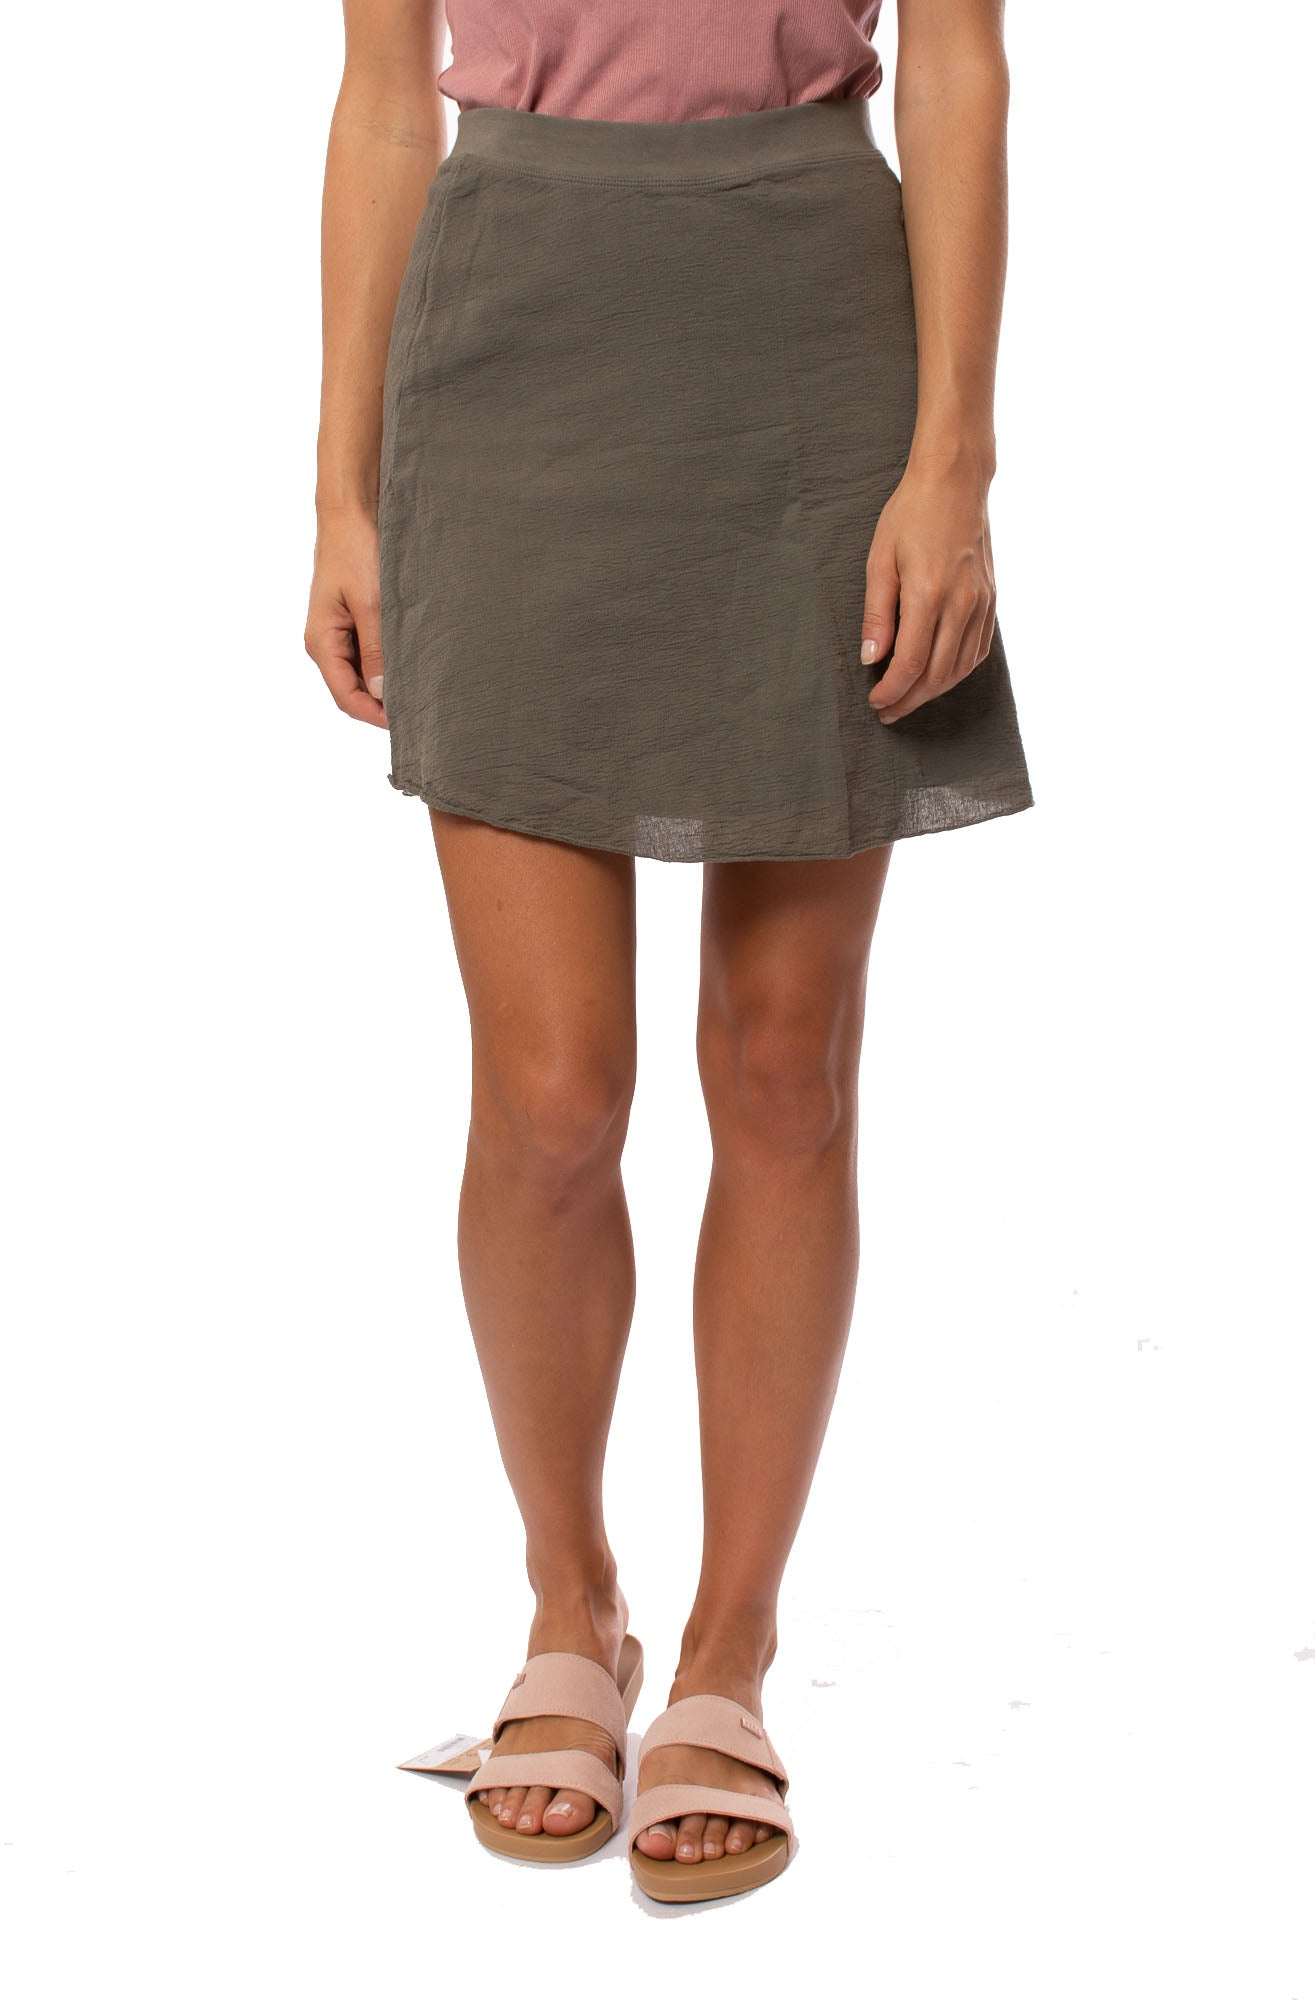 Hard Tail Forever - Crinkle Short Skirt (CRIN-05, Gravel)